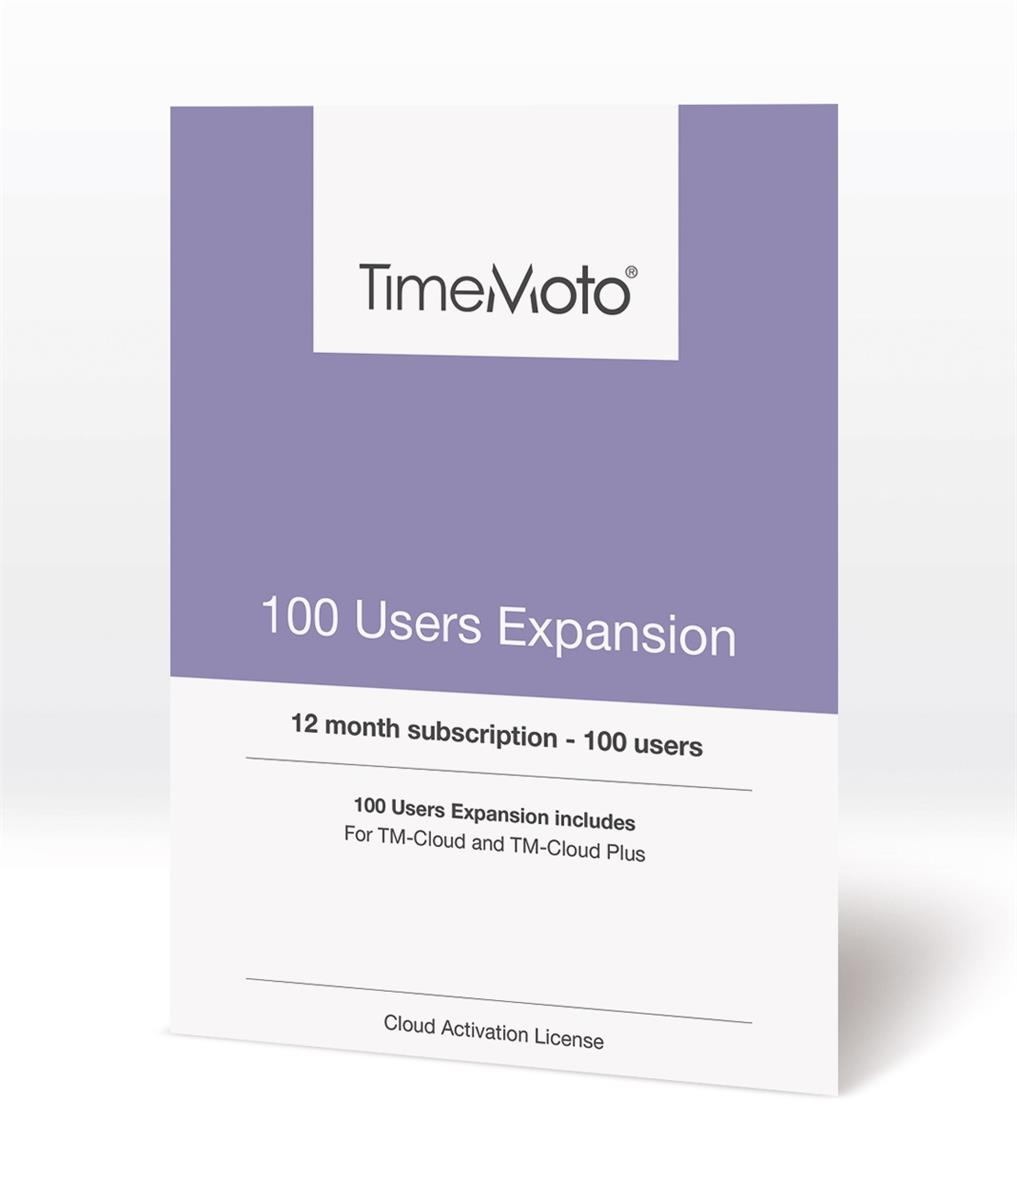 Safescan TimeMoto TM Cloud User Expansion 100 Users Ref 139-0593